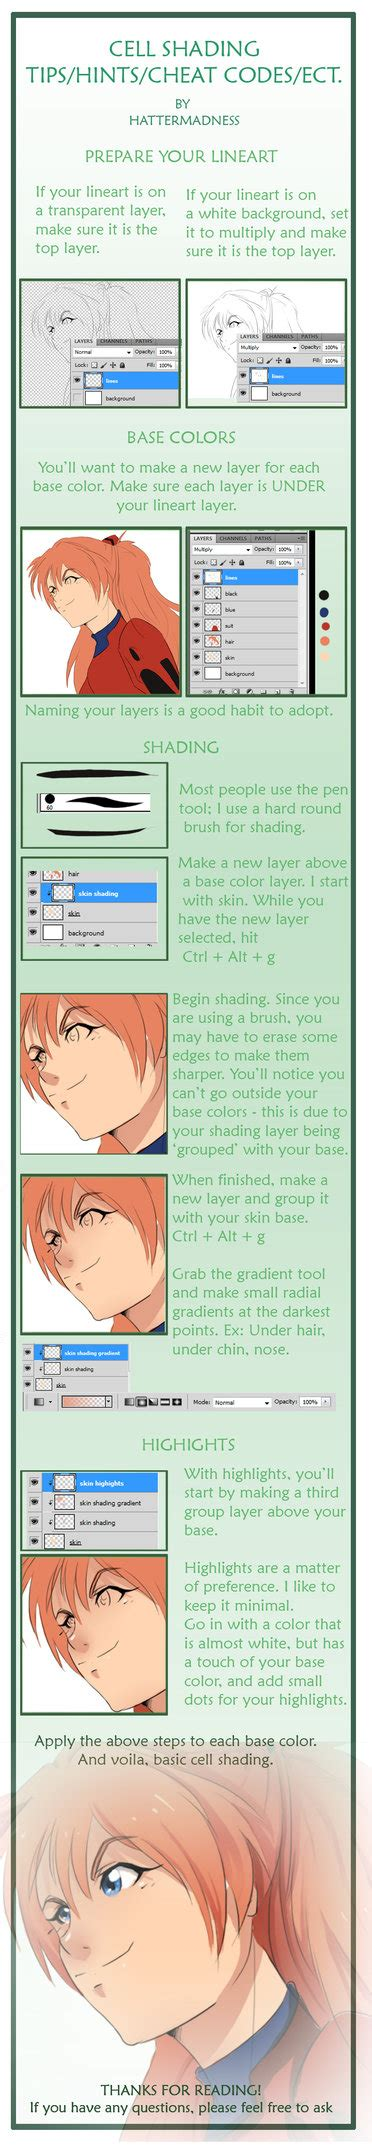 adobe photoshop shading tutorial cell shading tutorial by hattermadness on deviantart